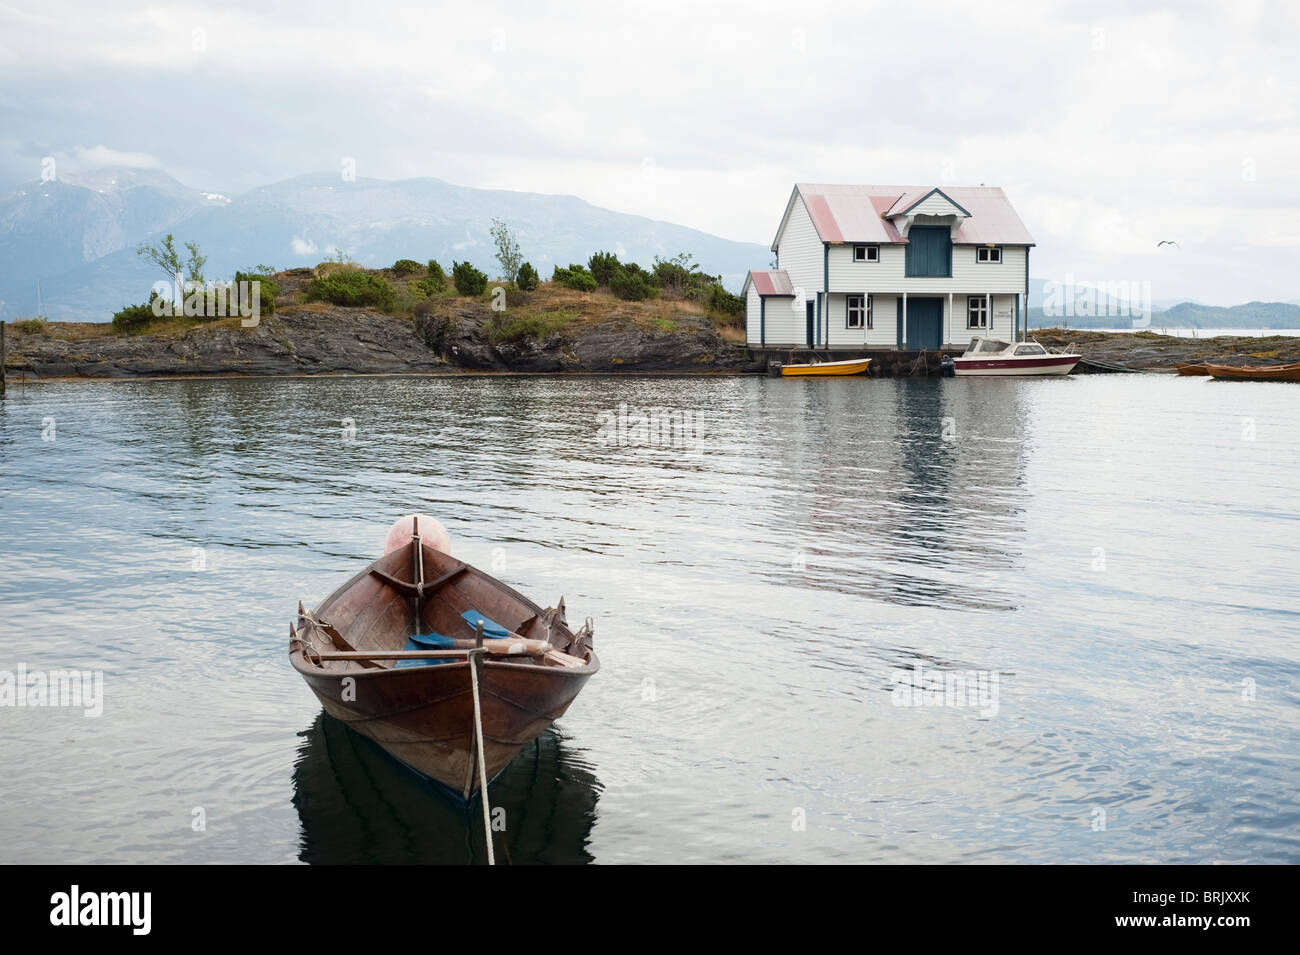 Boat with boat- and trade house in background by fjord at Onarheim, Hardanger in Norway. - Stock Image